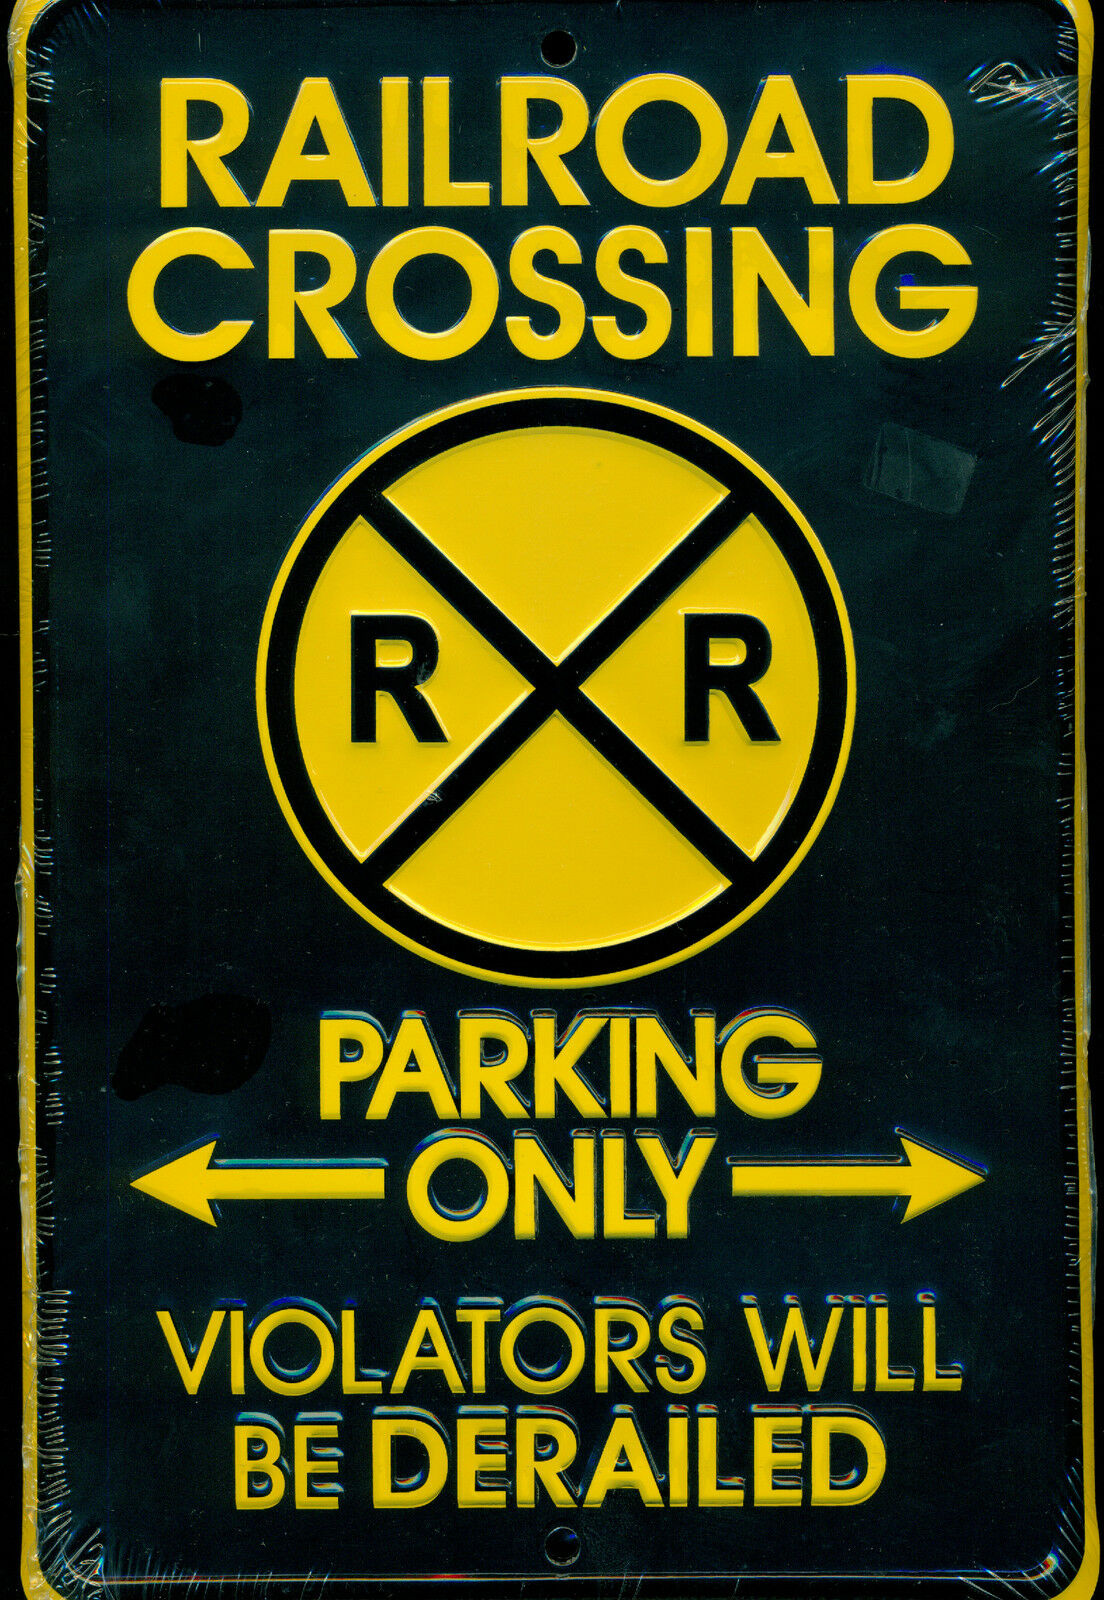 Railroad Crossing Parking Only purpletors Derailed Metal Collector Sign Brand New